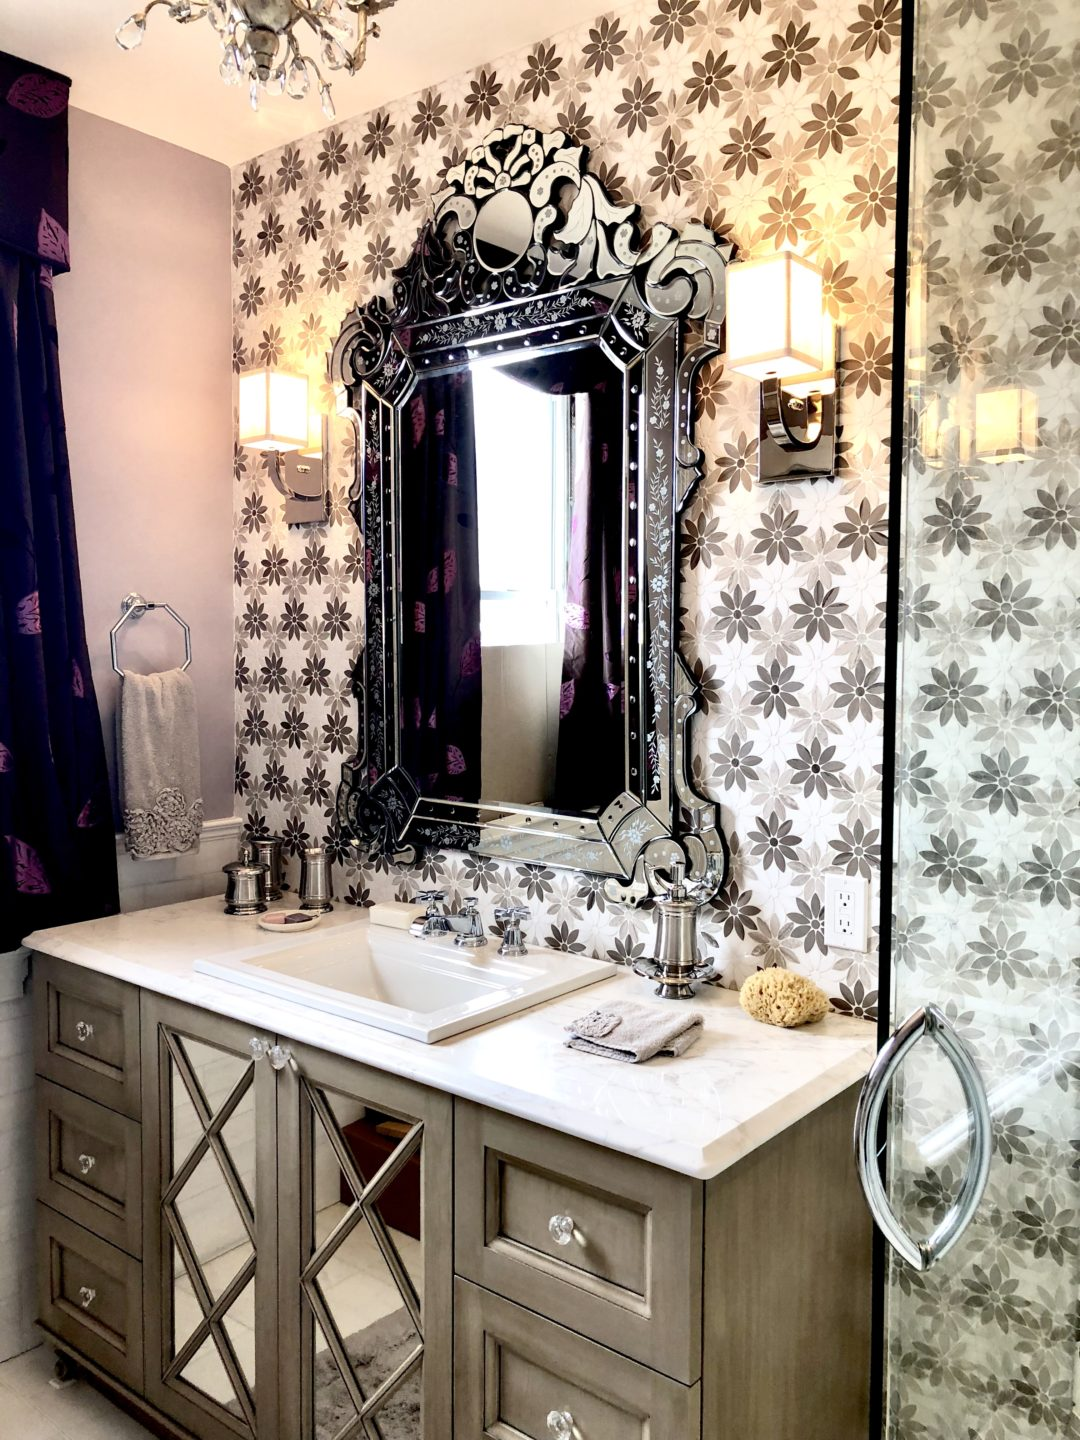 Cape May Showhouse Ensuite Bathroom Vanity